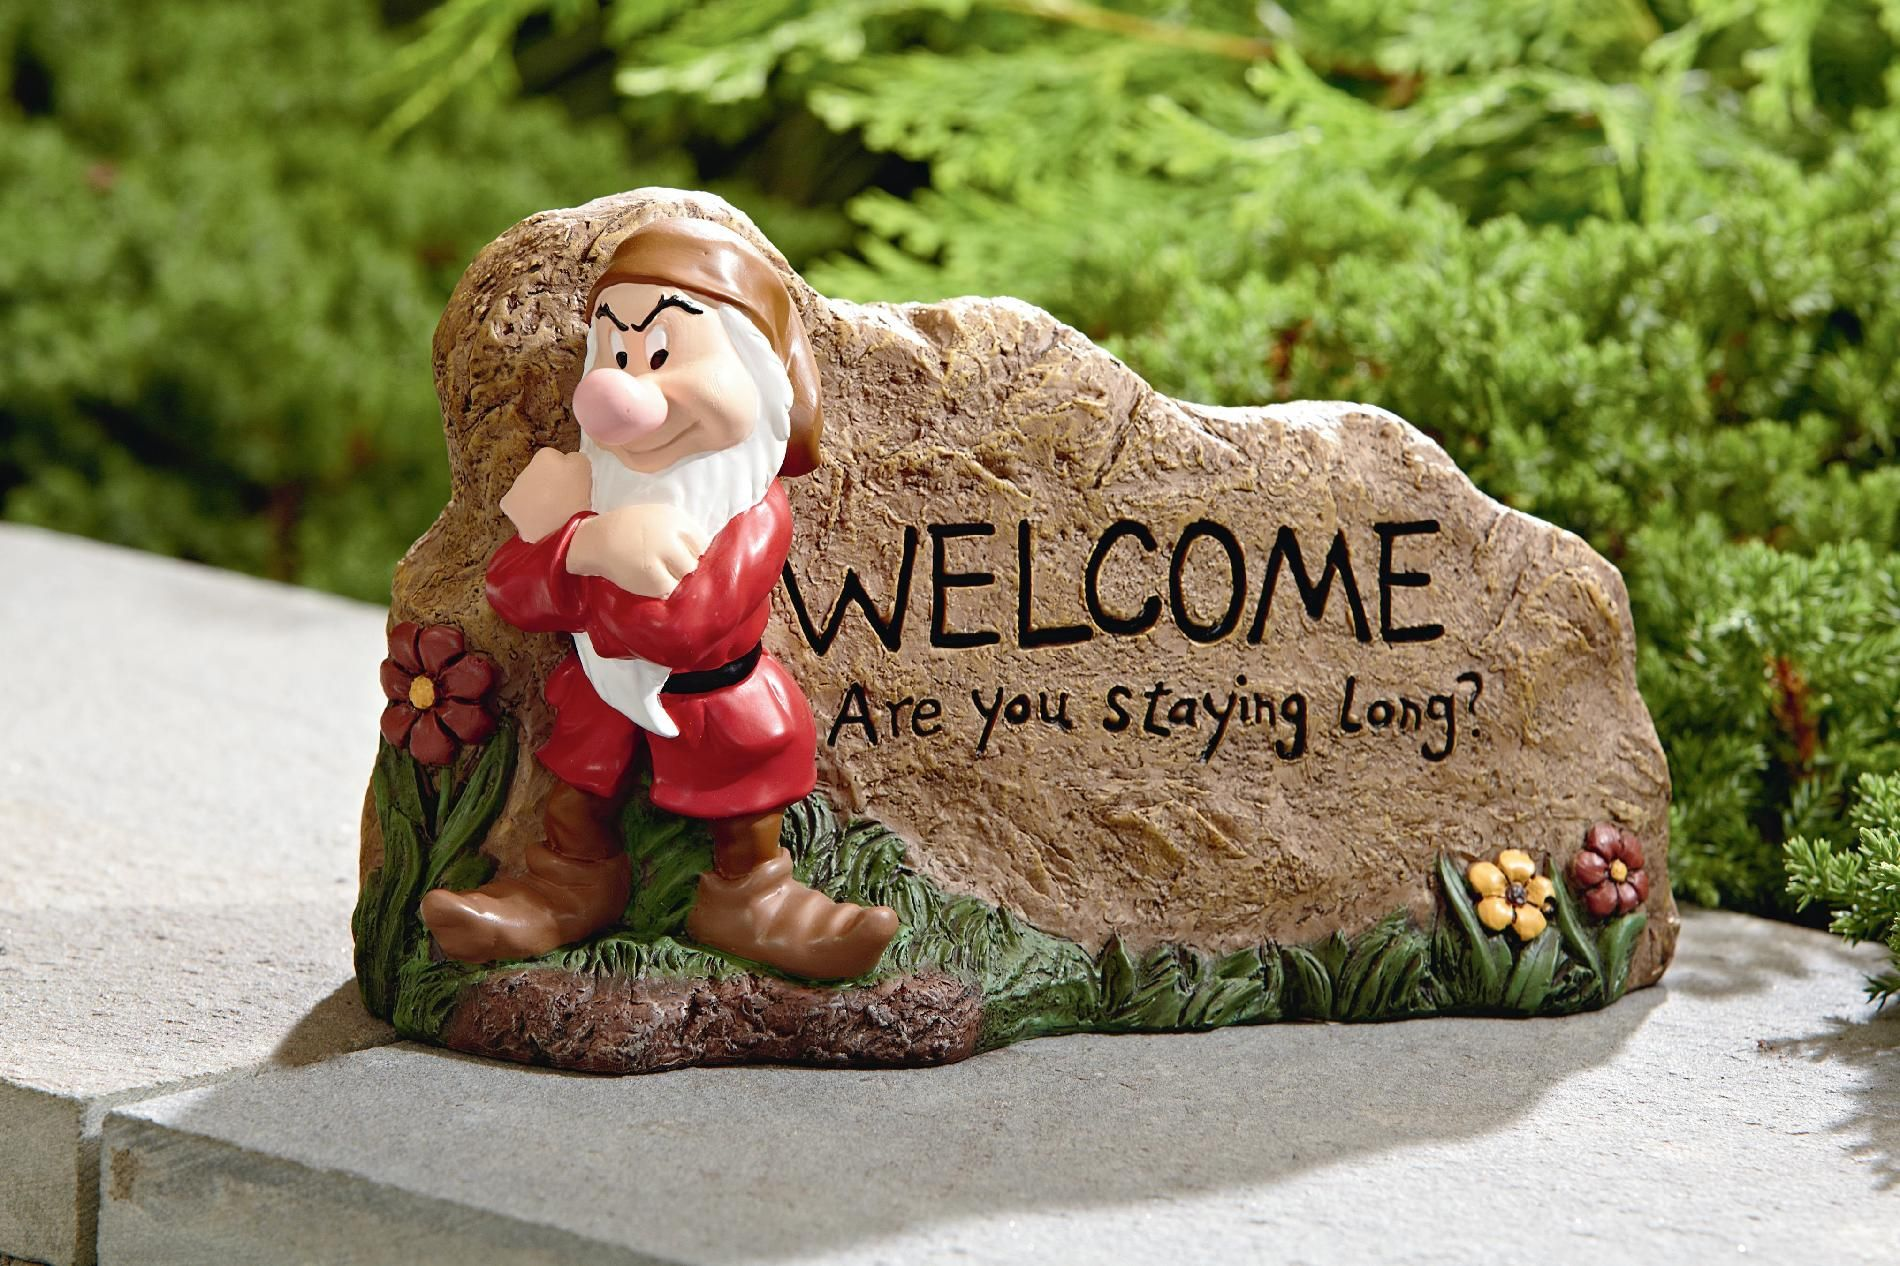 Disney GRUMPY GARDEN ROCK, WELCOME - Outdoor Living - Outdoor Decor ...